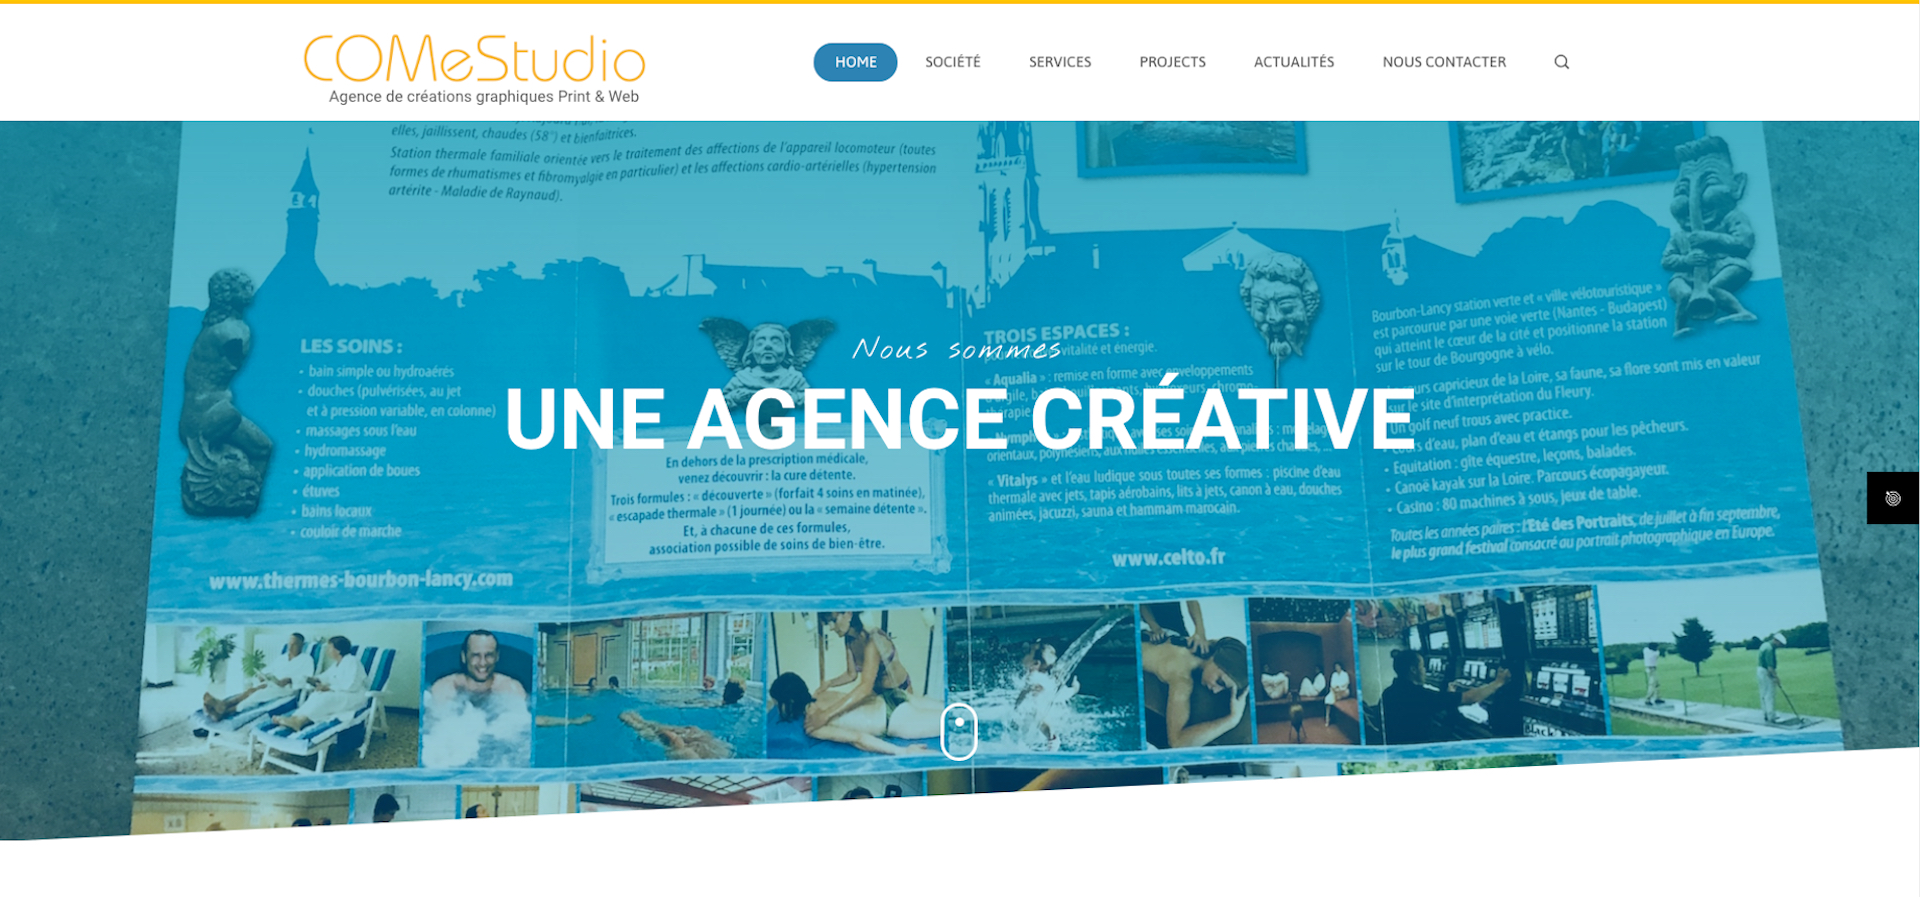 Site Internet de COMeStudio